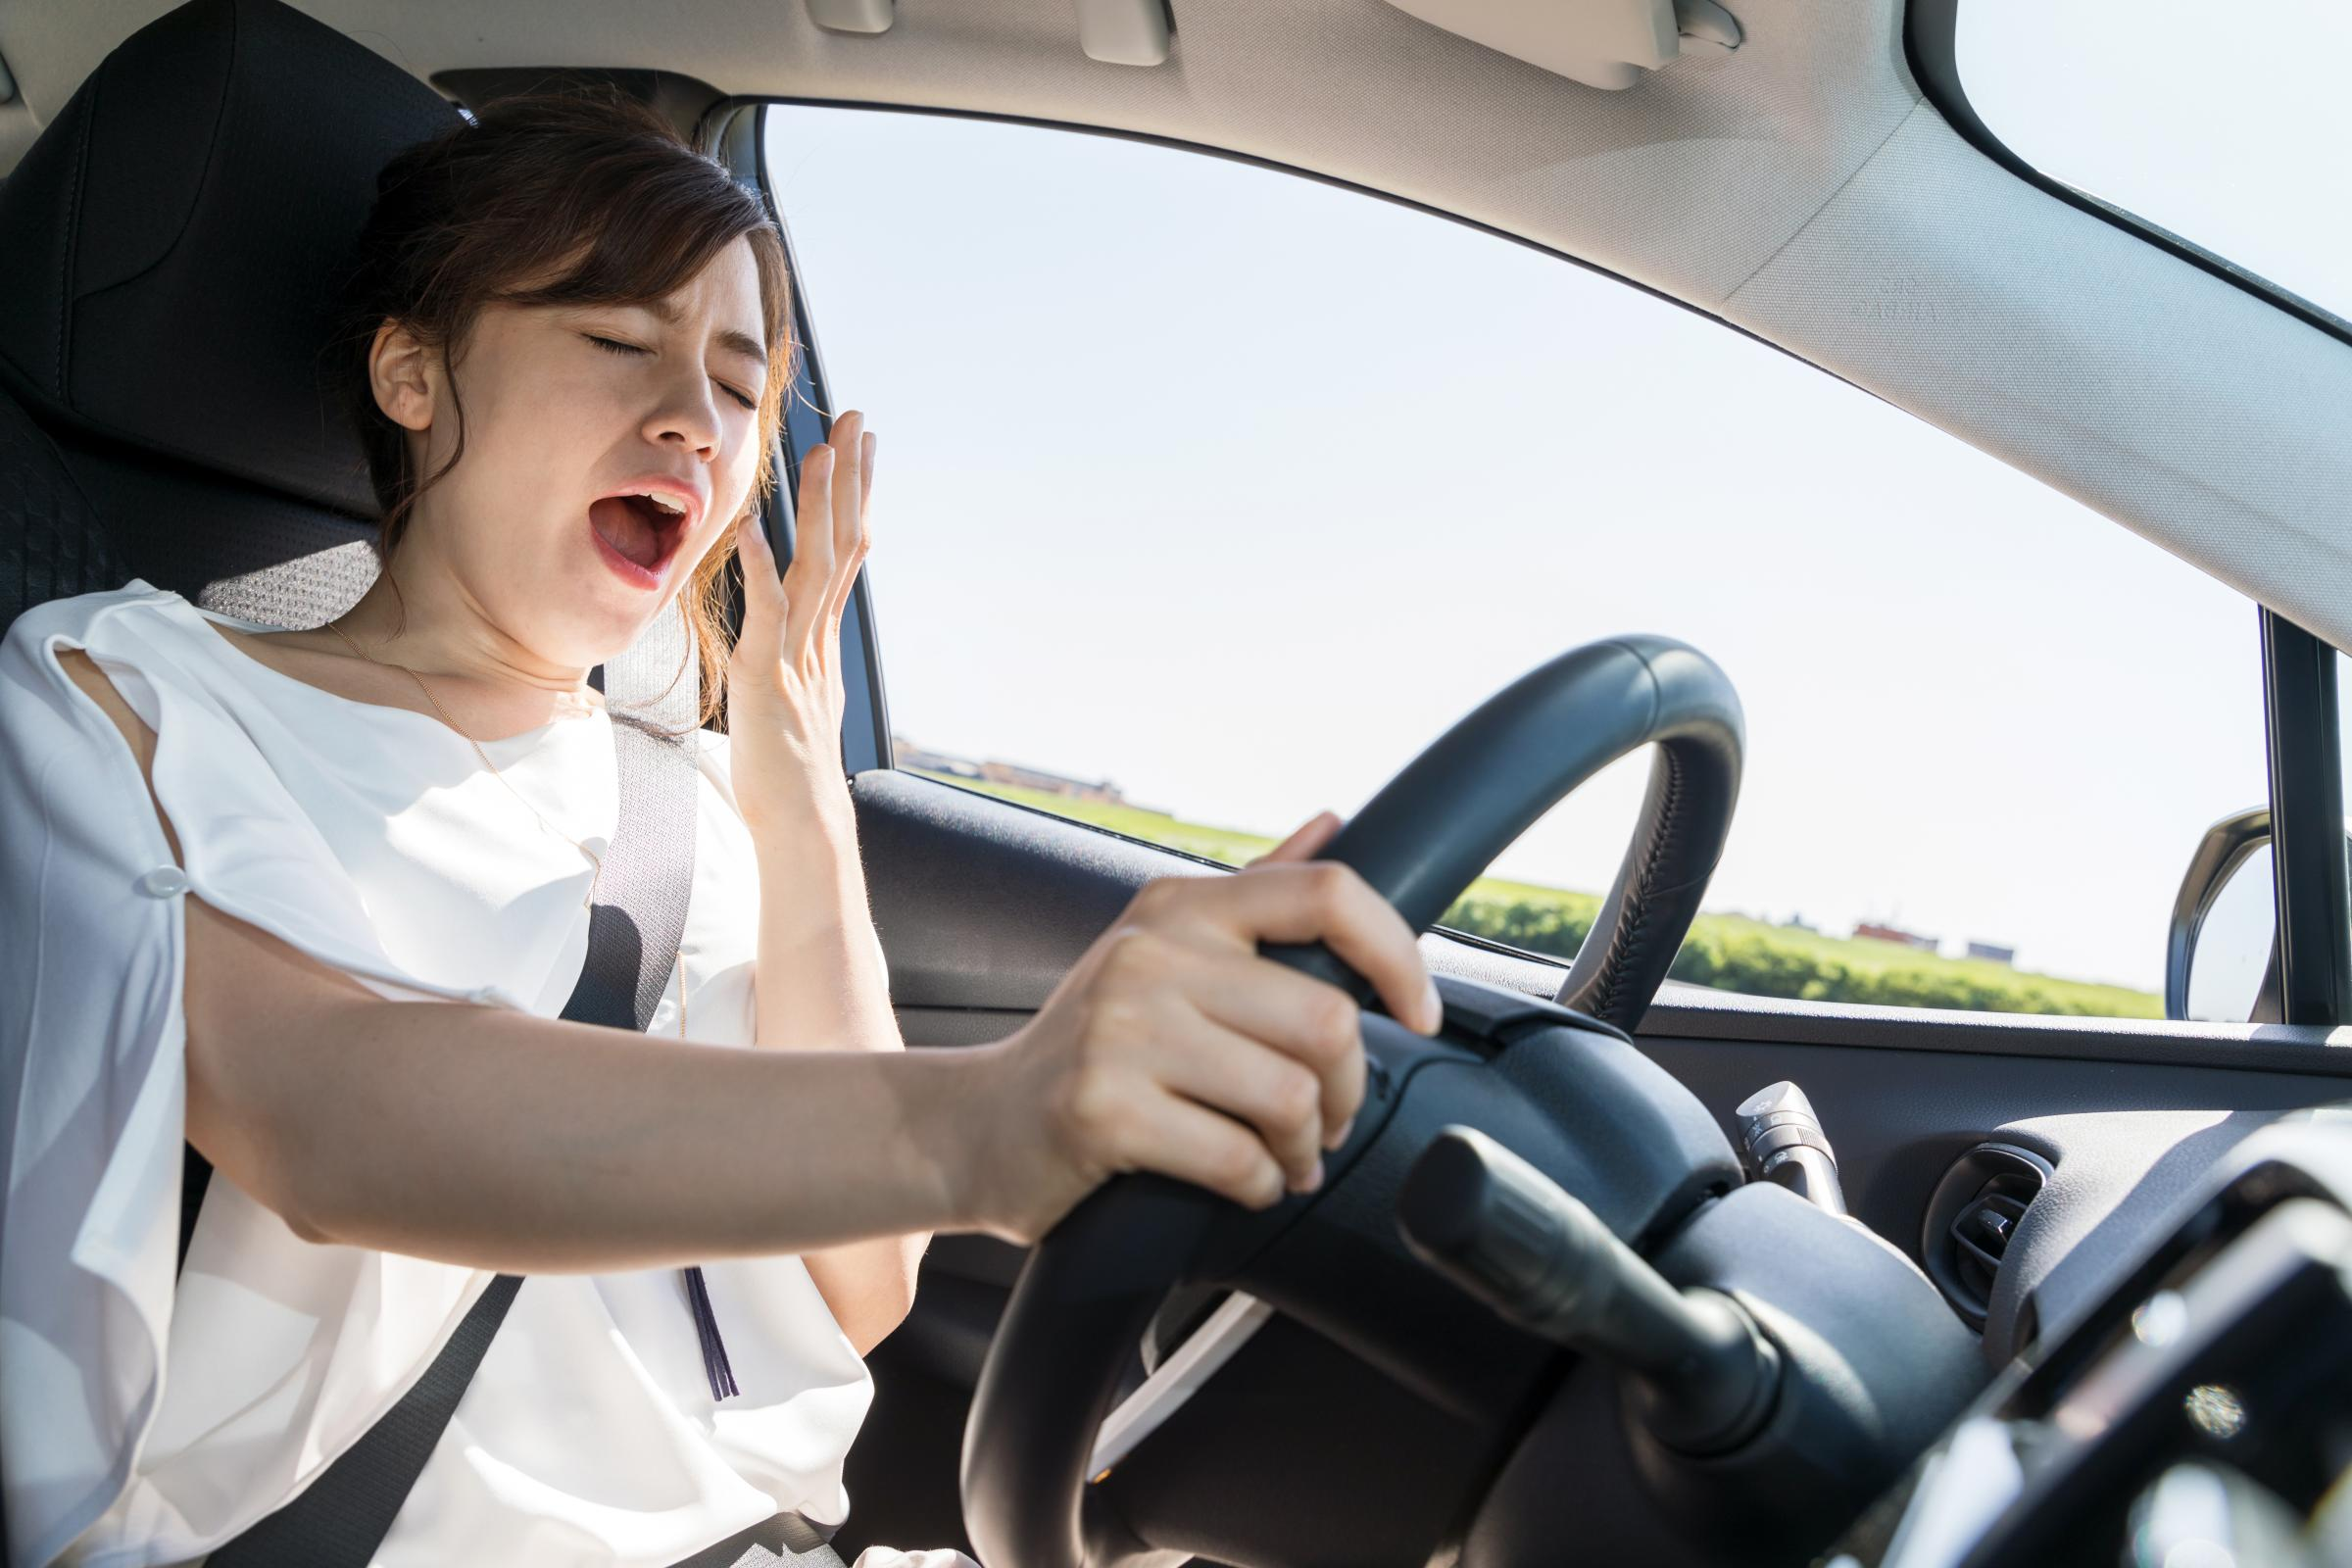 tired young woman yawning while driving her car - may cause car wreck